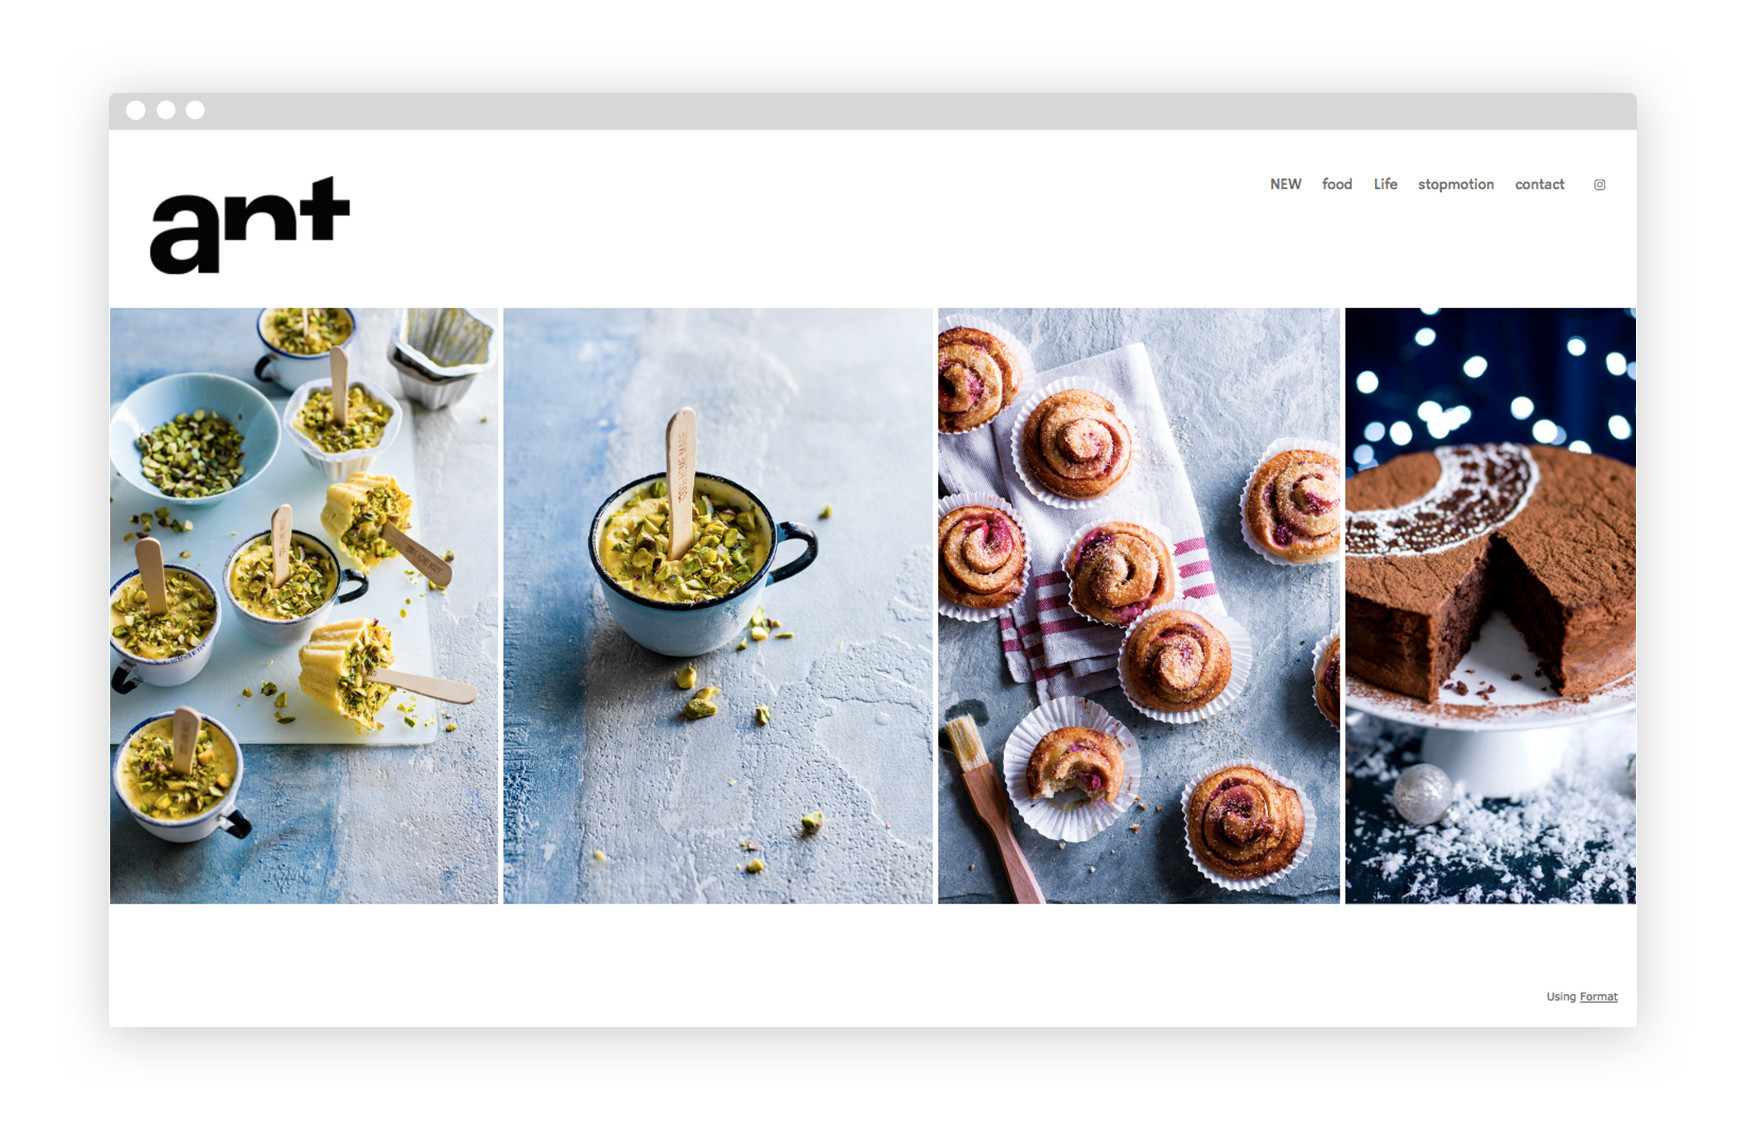 20 Food Photography Portfolios To Make You Very Hungry